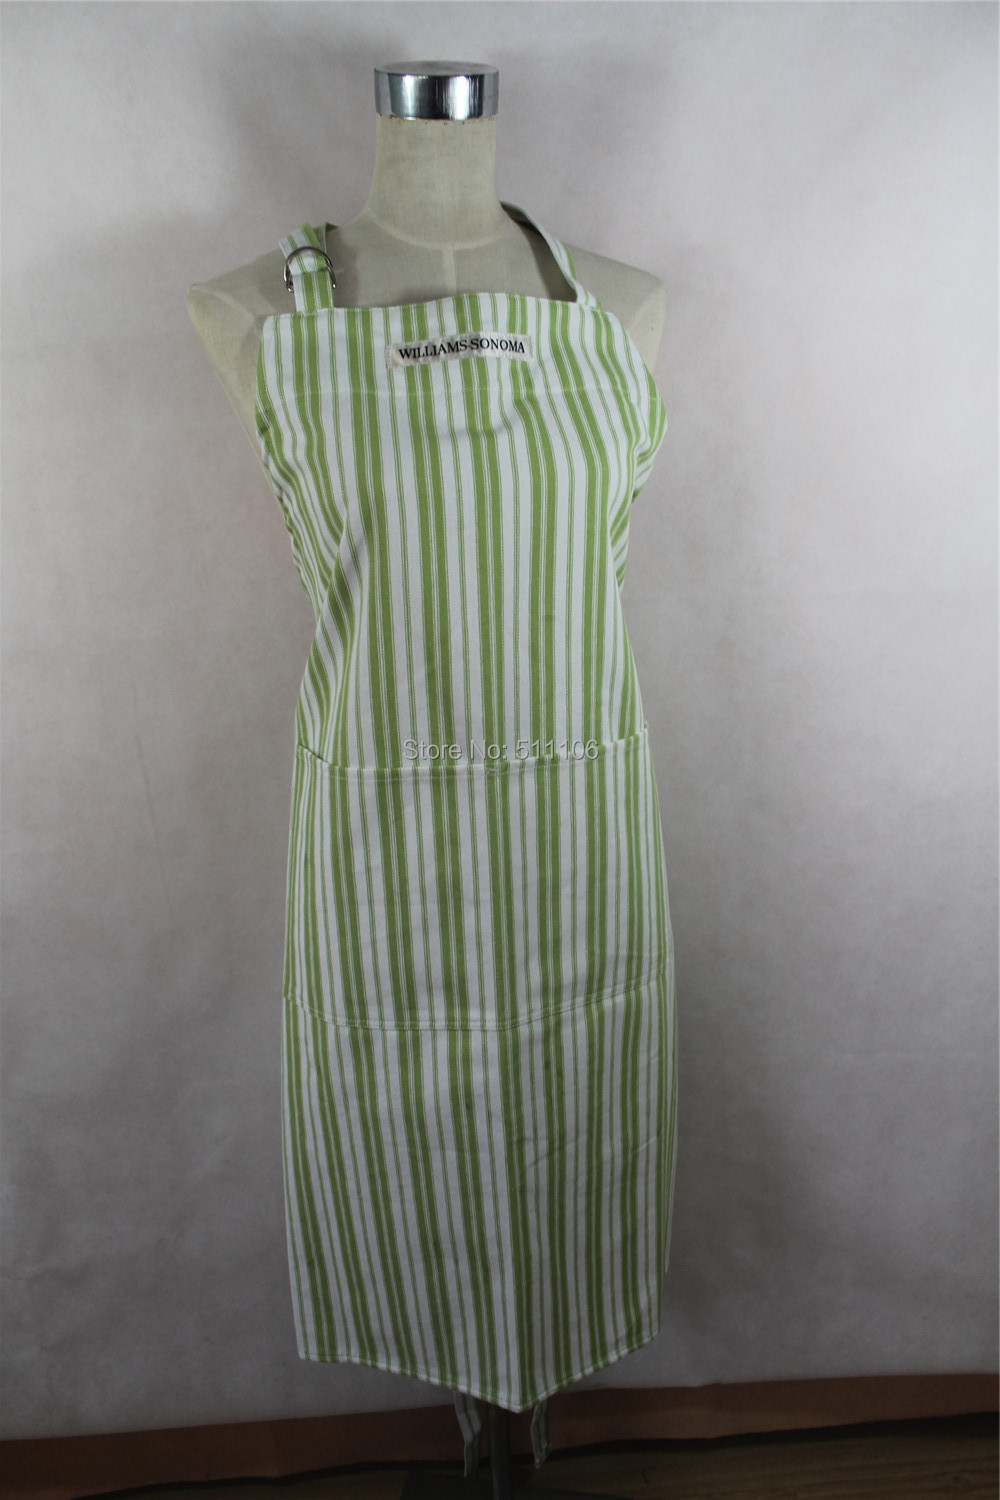 High Quality Green Striped Cotton Cooking Apron/Waiter Apron Wholesale(China (Mainland))